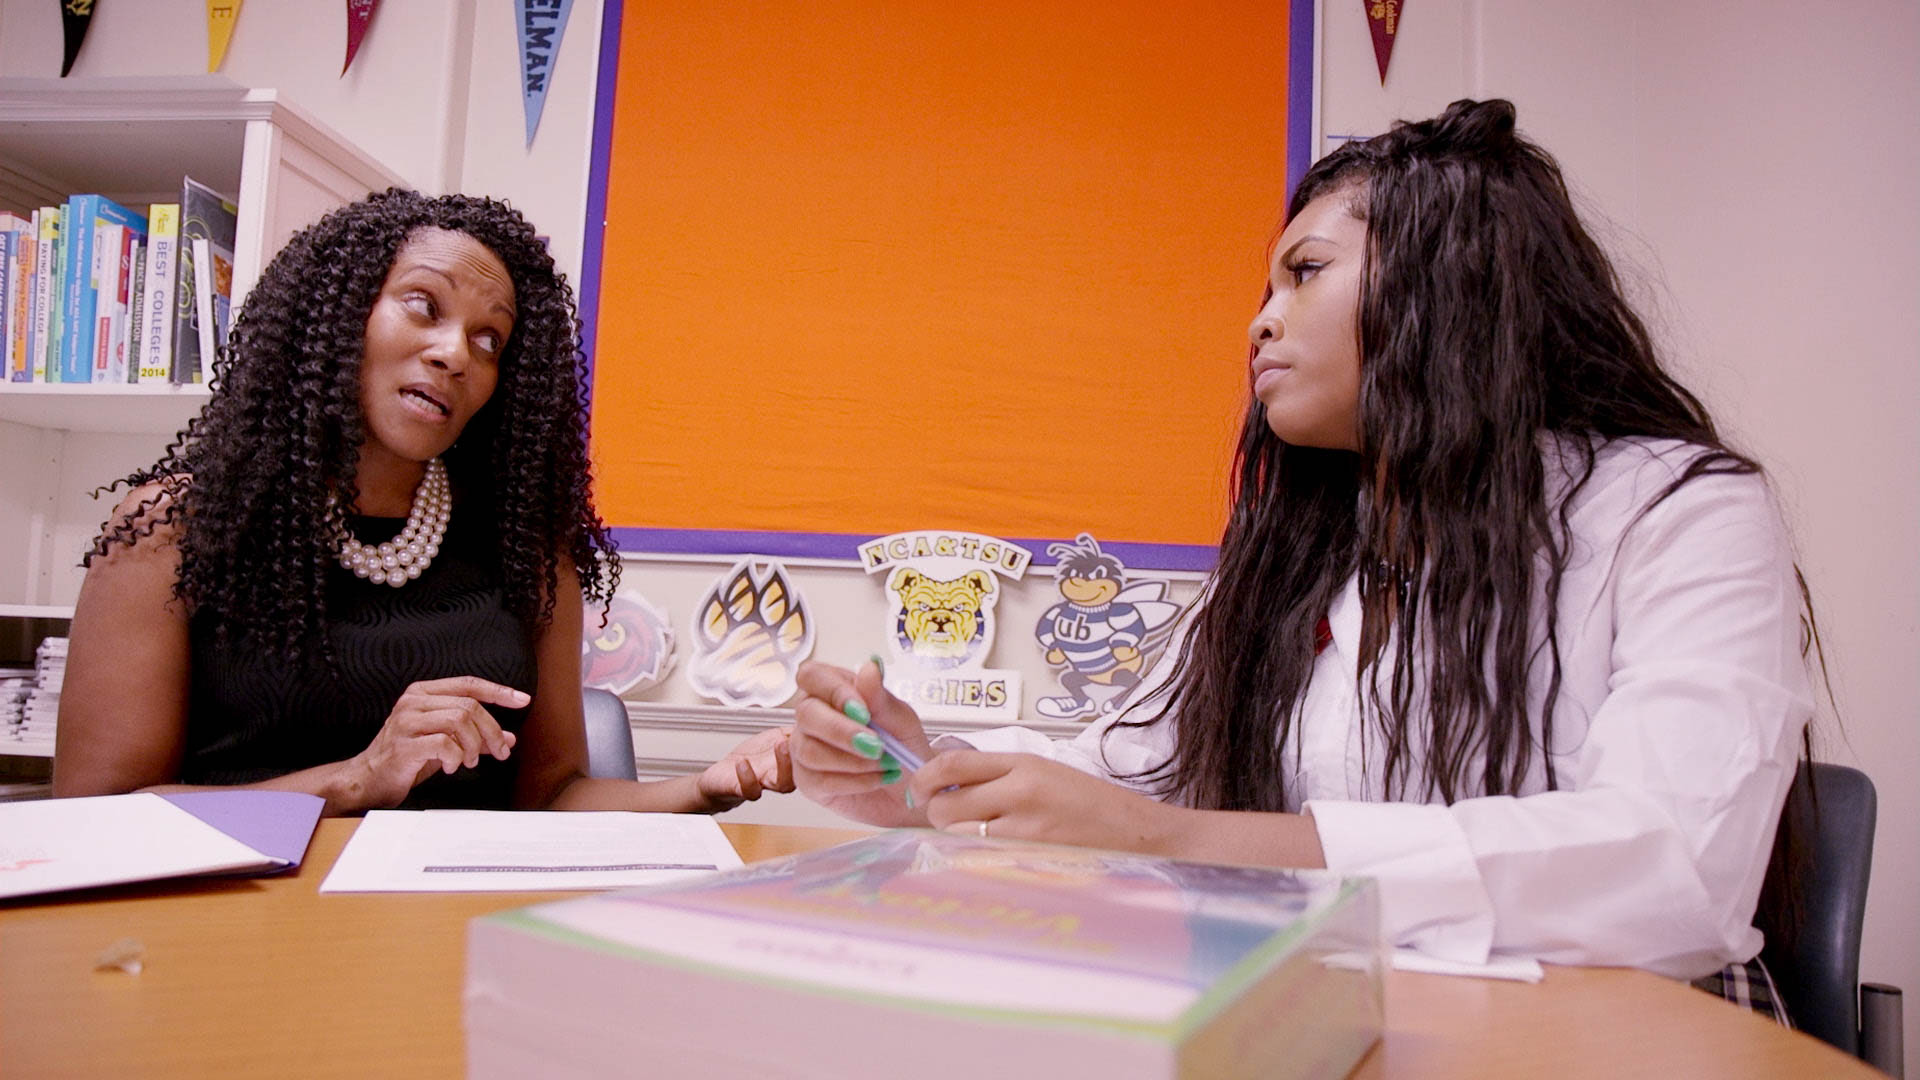 "(  | courtesy Fox Searchlight Pictures) Paula Dofat (left), counselor at the Baltimore Leadership School for Young Women, talks with student Blessin Giraldo, in a moment from the documentary ""Step."""